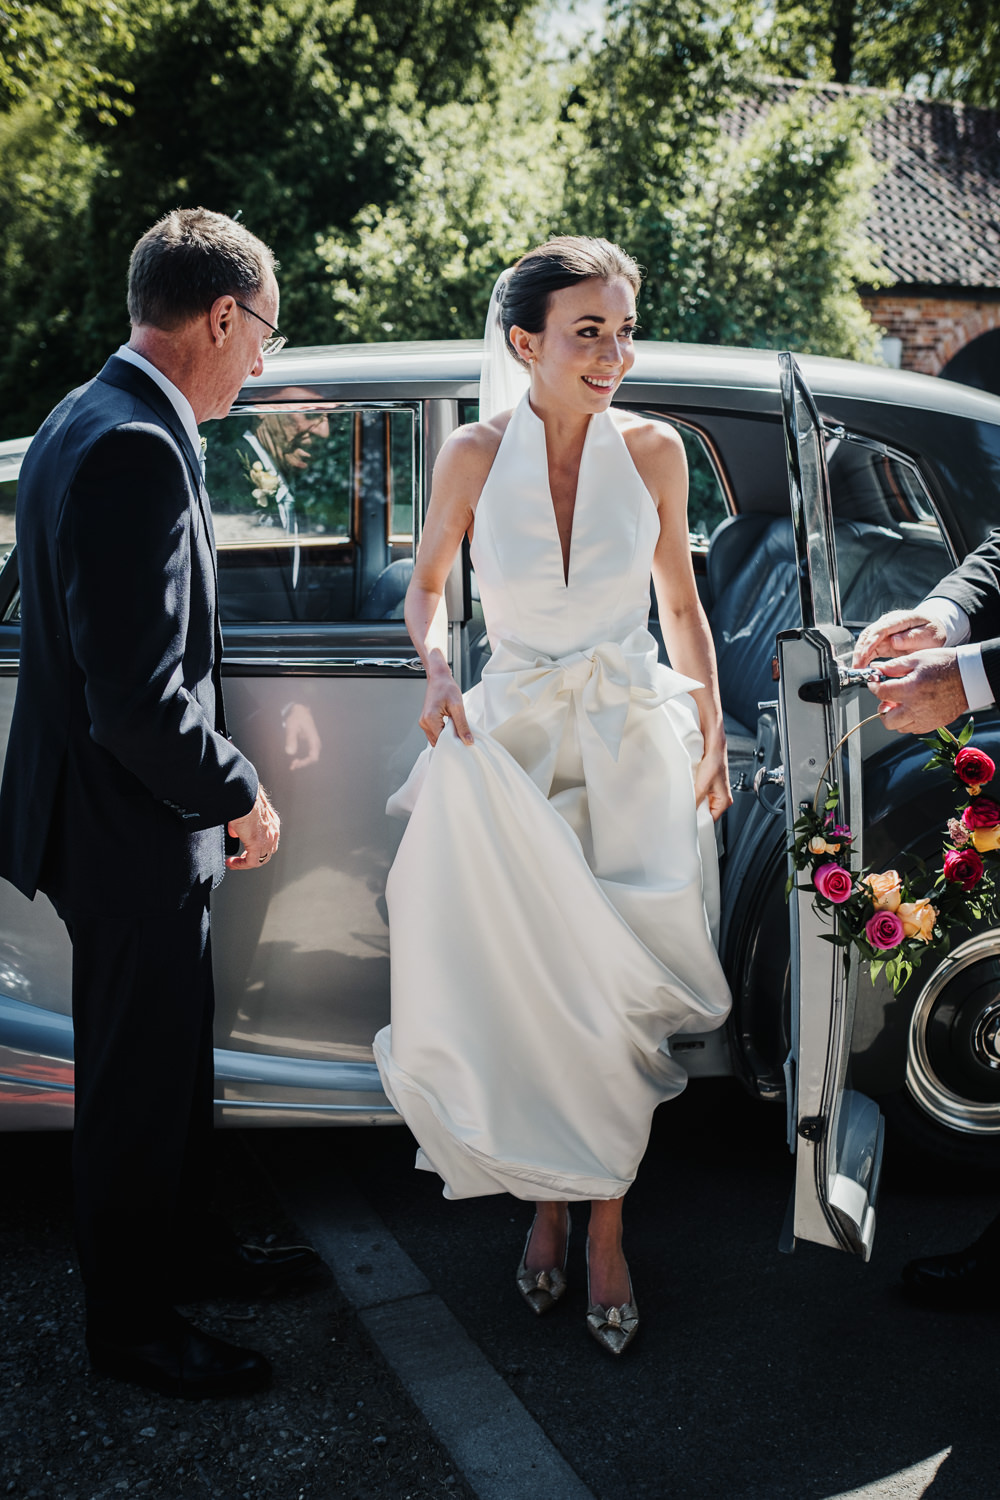 Bride Bridal Halterneck Collar Dress Gown Pockets Bow Jesus Peiro Middlethorpe Hall Wedding Andy Withey Photography